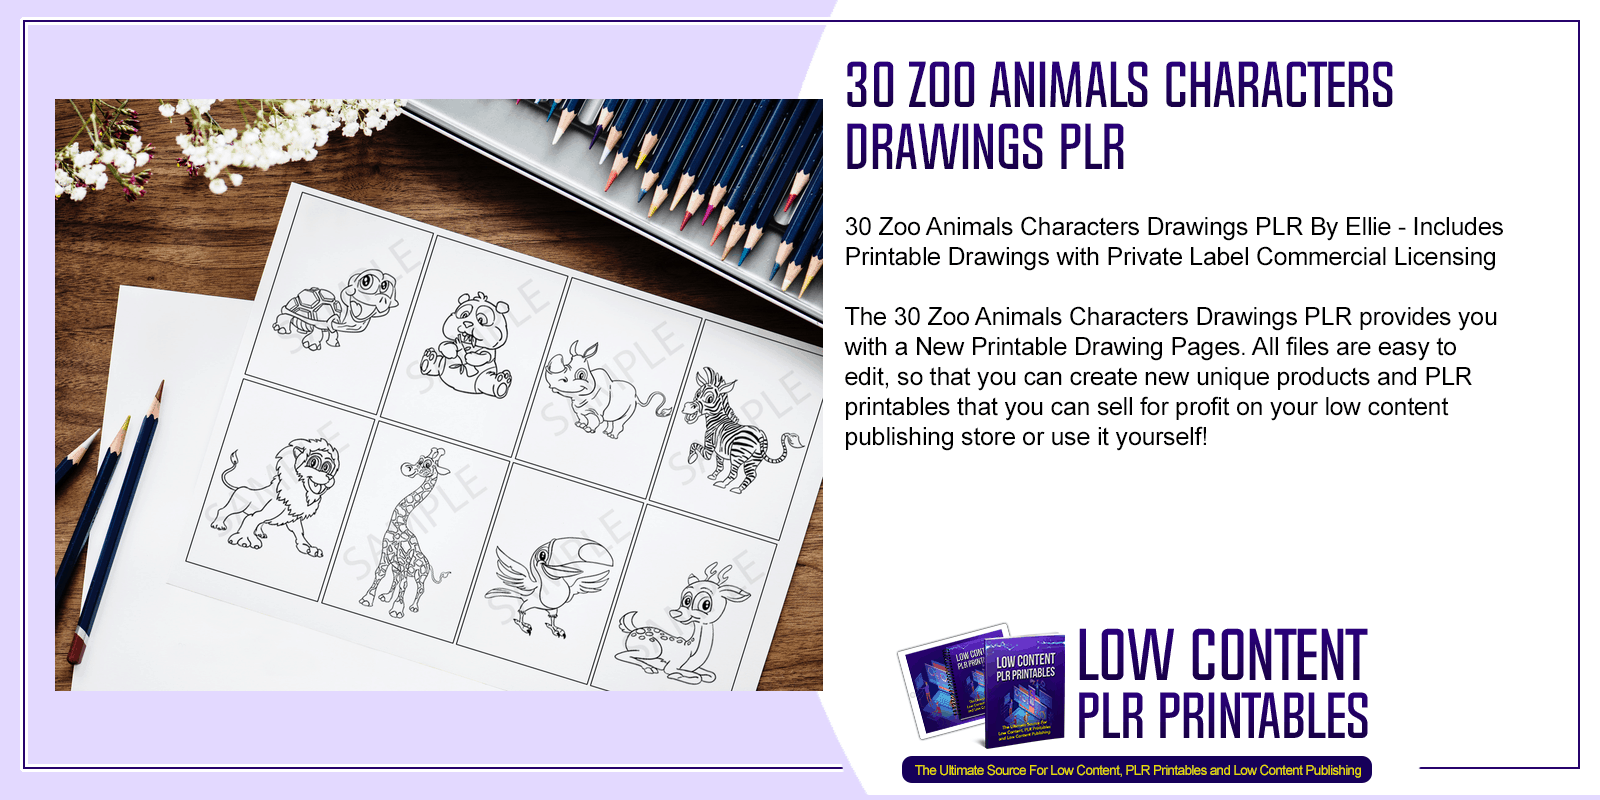 30 Zoo Animals Characters Drawings PLR